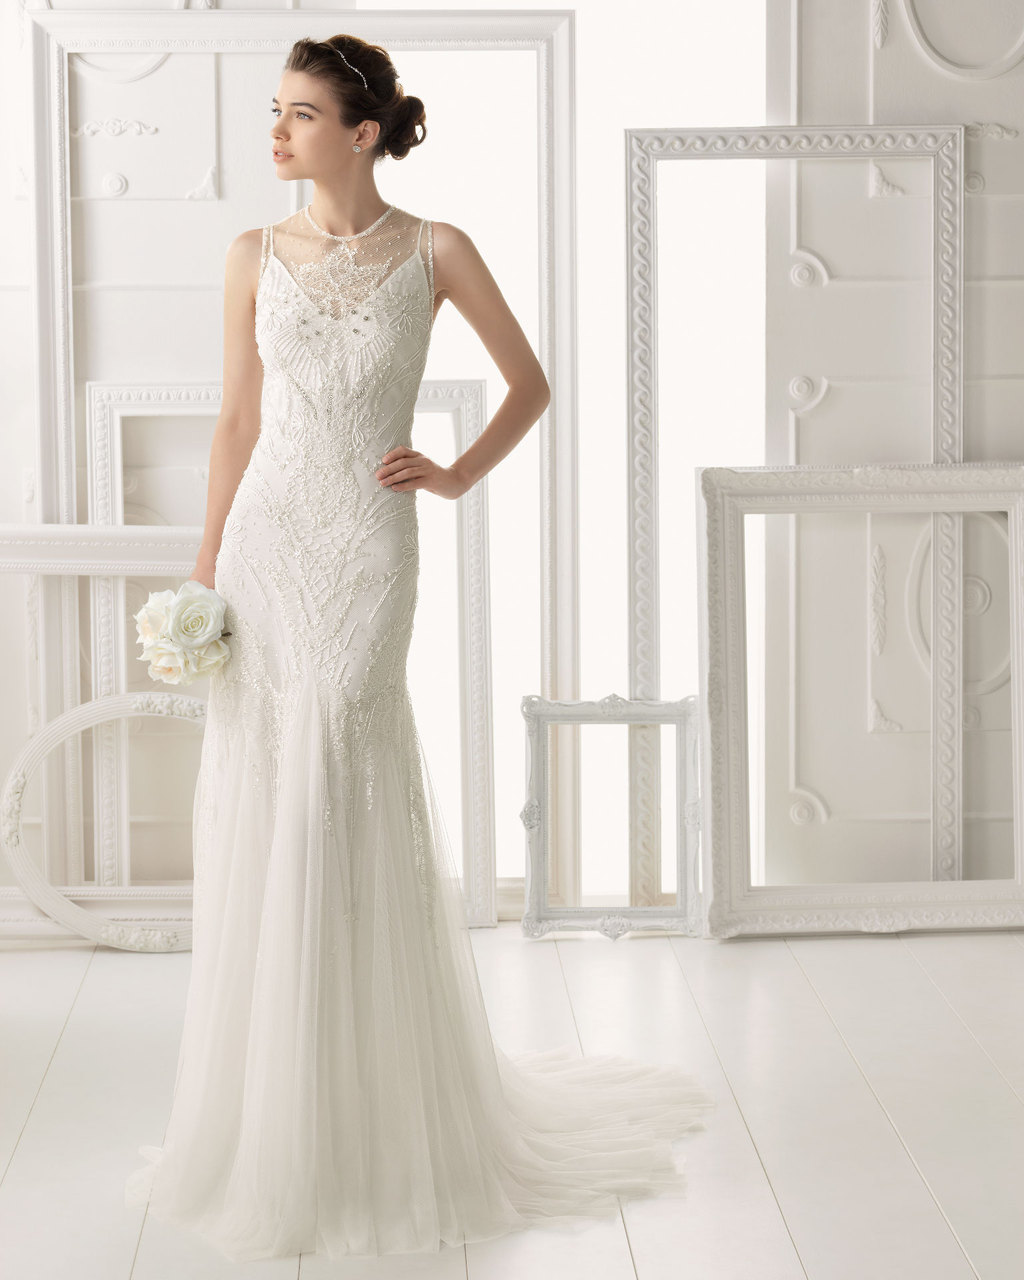 Aire-barcelona-wedding-dress-2014-bridal-omeya.full